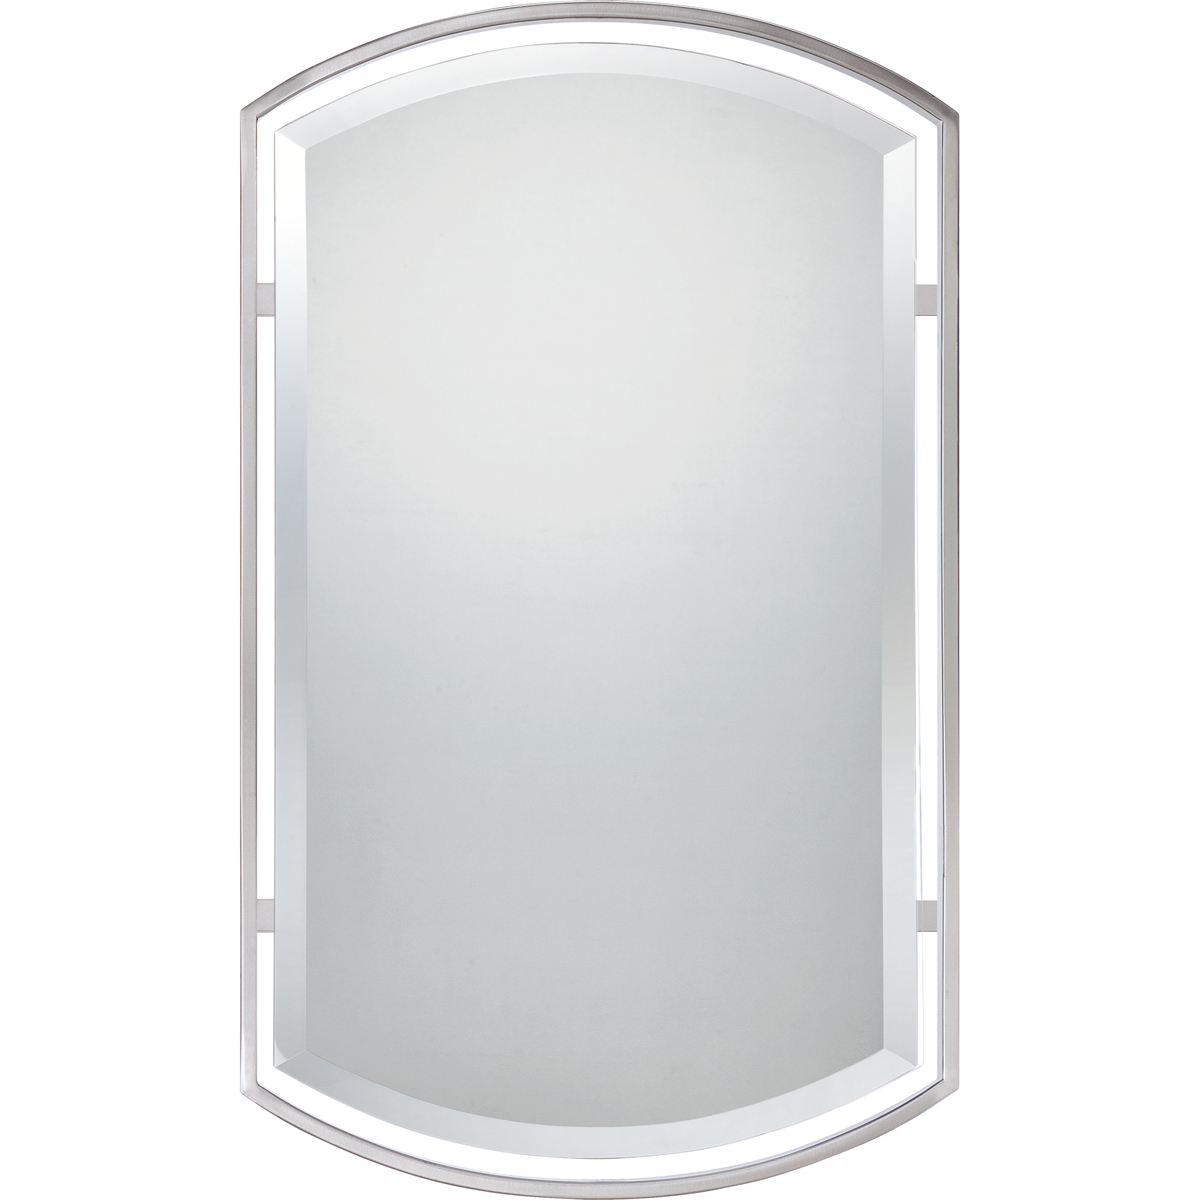 Quoizel Bathroom Mirrors quoizel lighting (qr1419bn) mirror in brushed nickel with semi